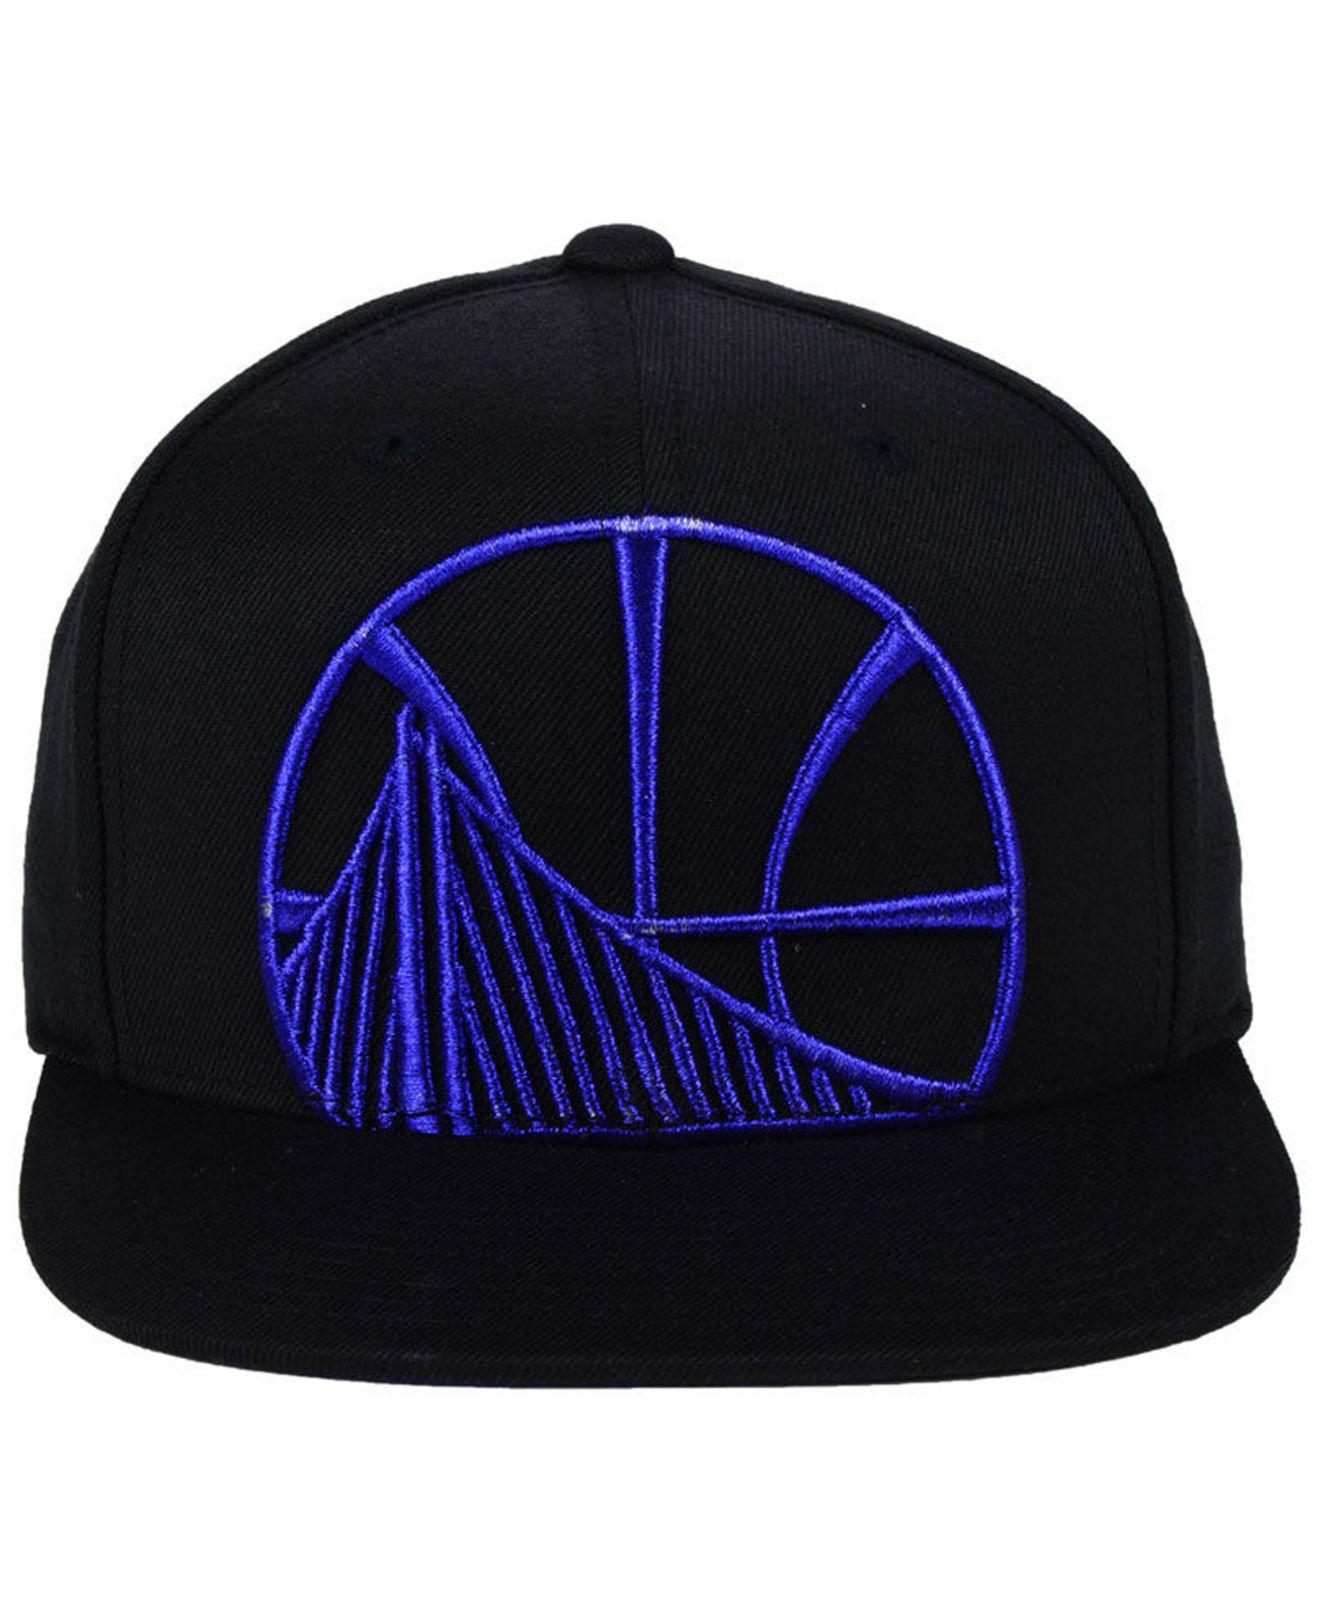 dcdf38e5147 ... greece lyst mitchell ness golden state warriors metallic cropped snapback  cap in black for men 9856b